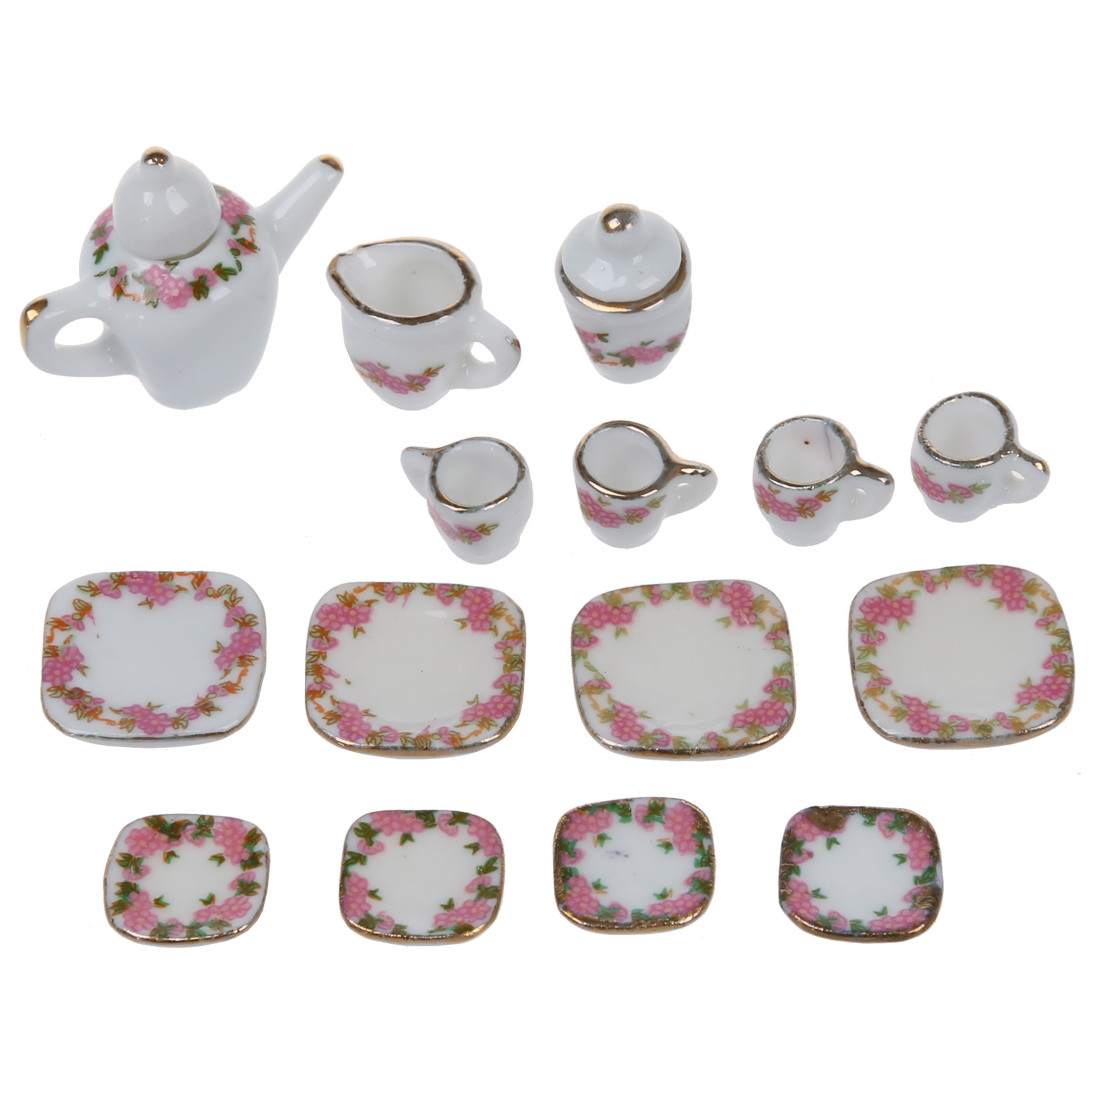 Pretend Play Honest Set Of 15pcs 1/12 Dollhouse Miniature Dining Ware Porcelain Tea Set Pot+dish+cup+saucer